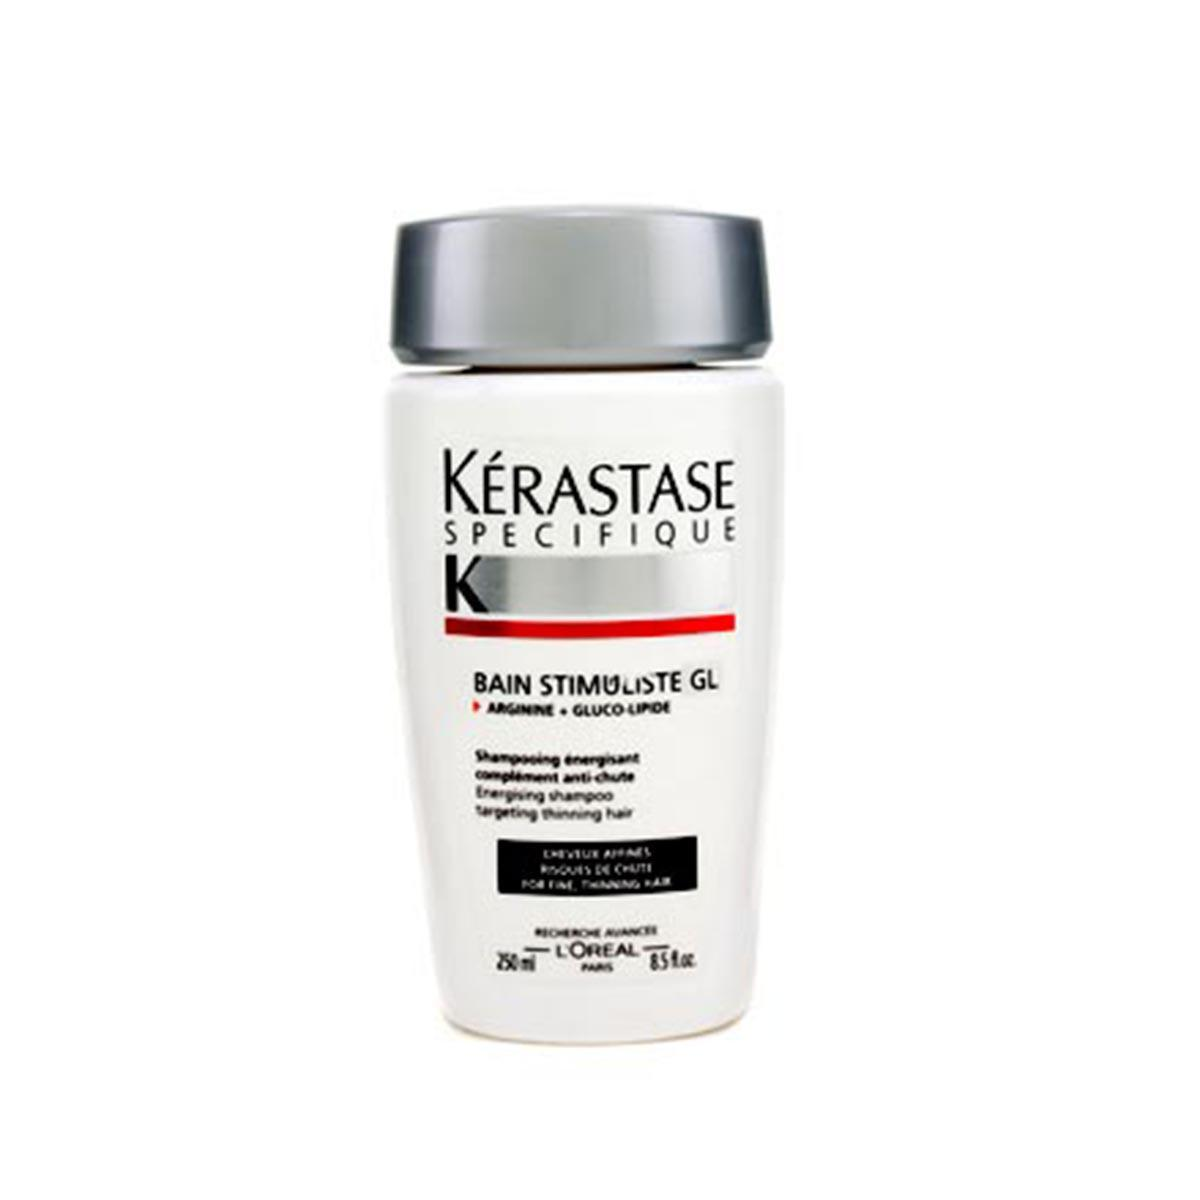 Kerastase fragrances Bain Stimuliste Gl 250ml